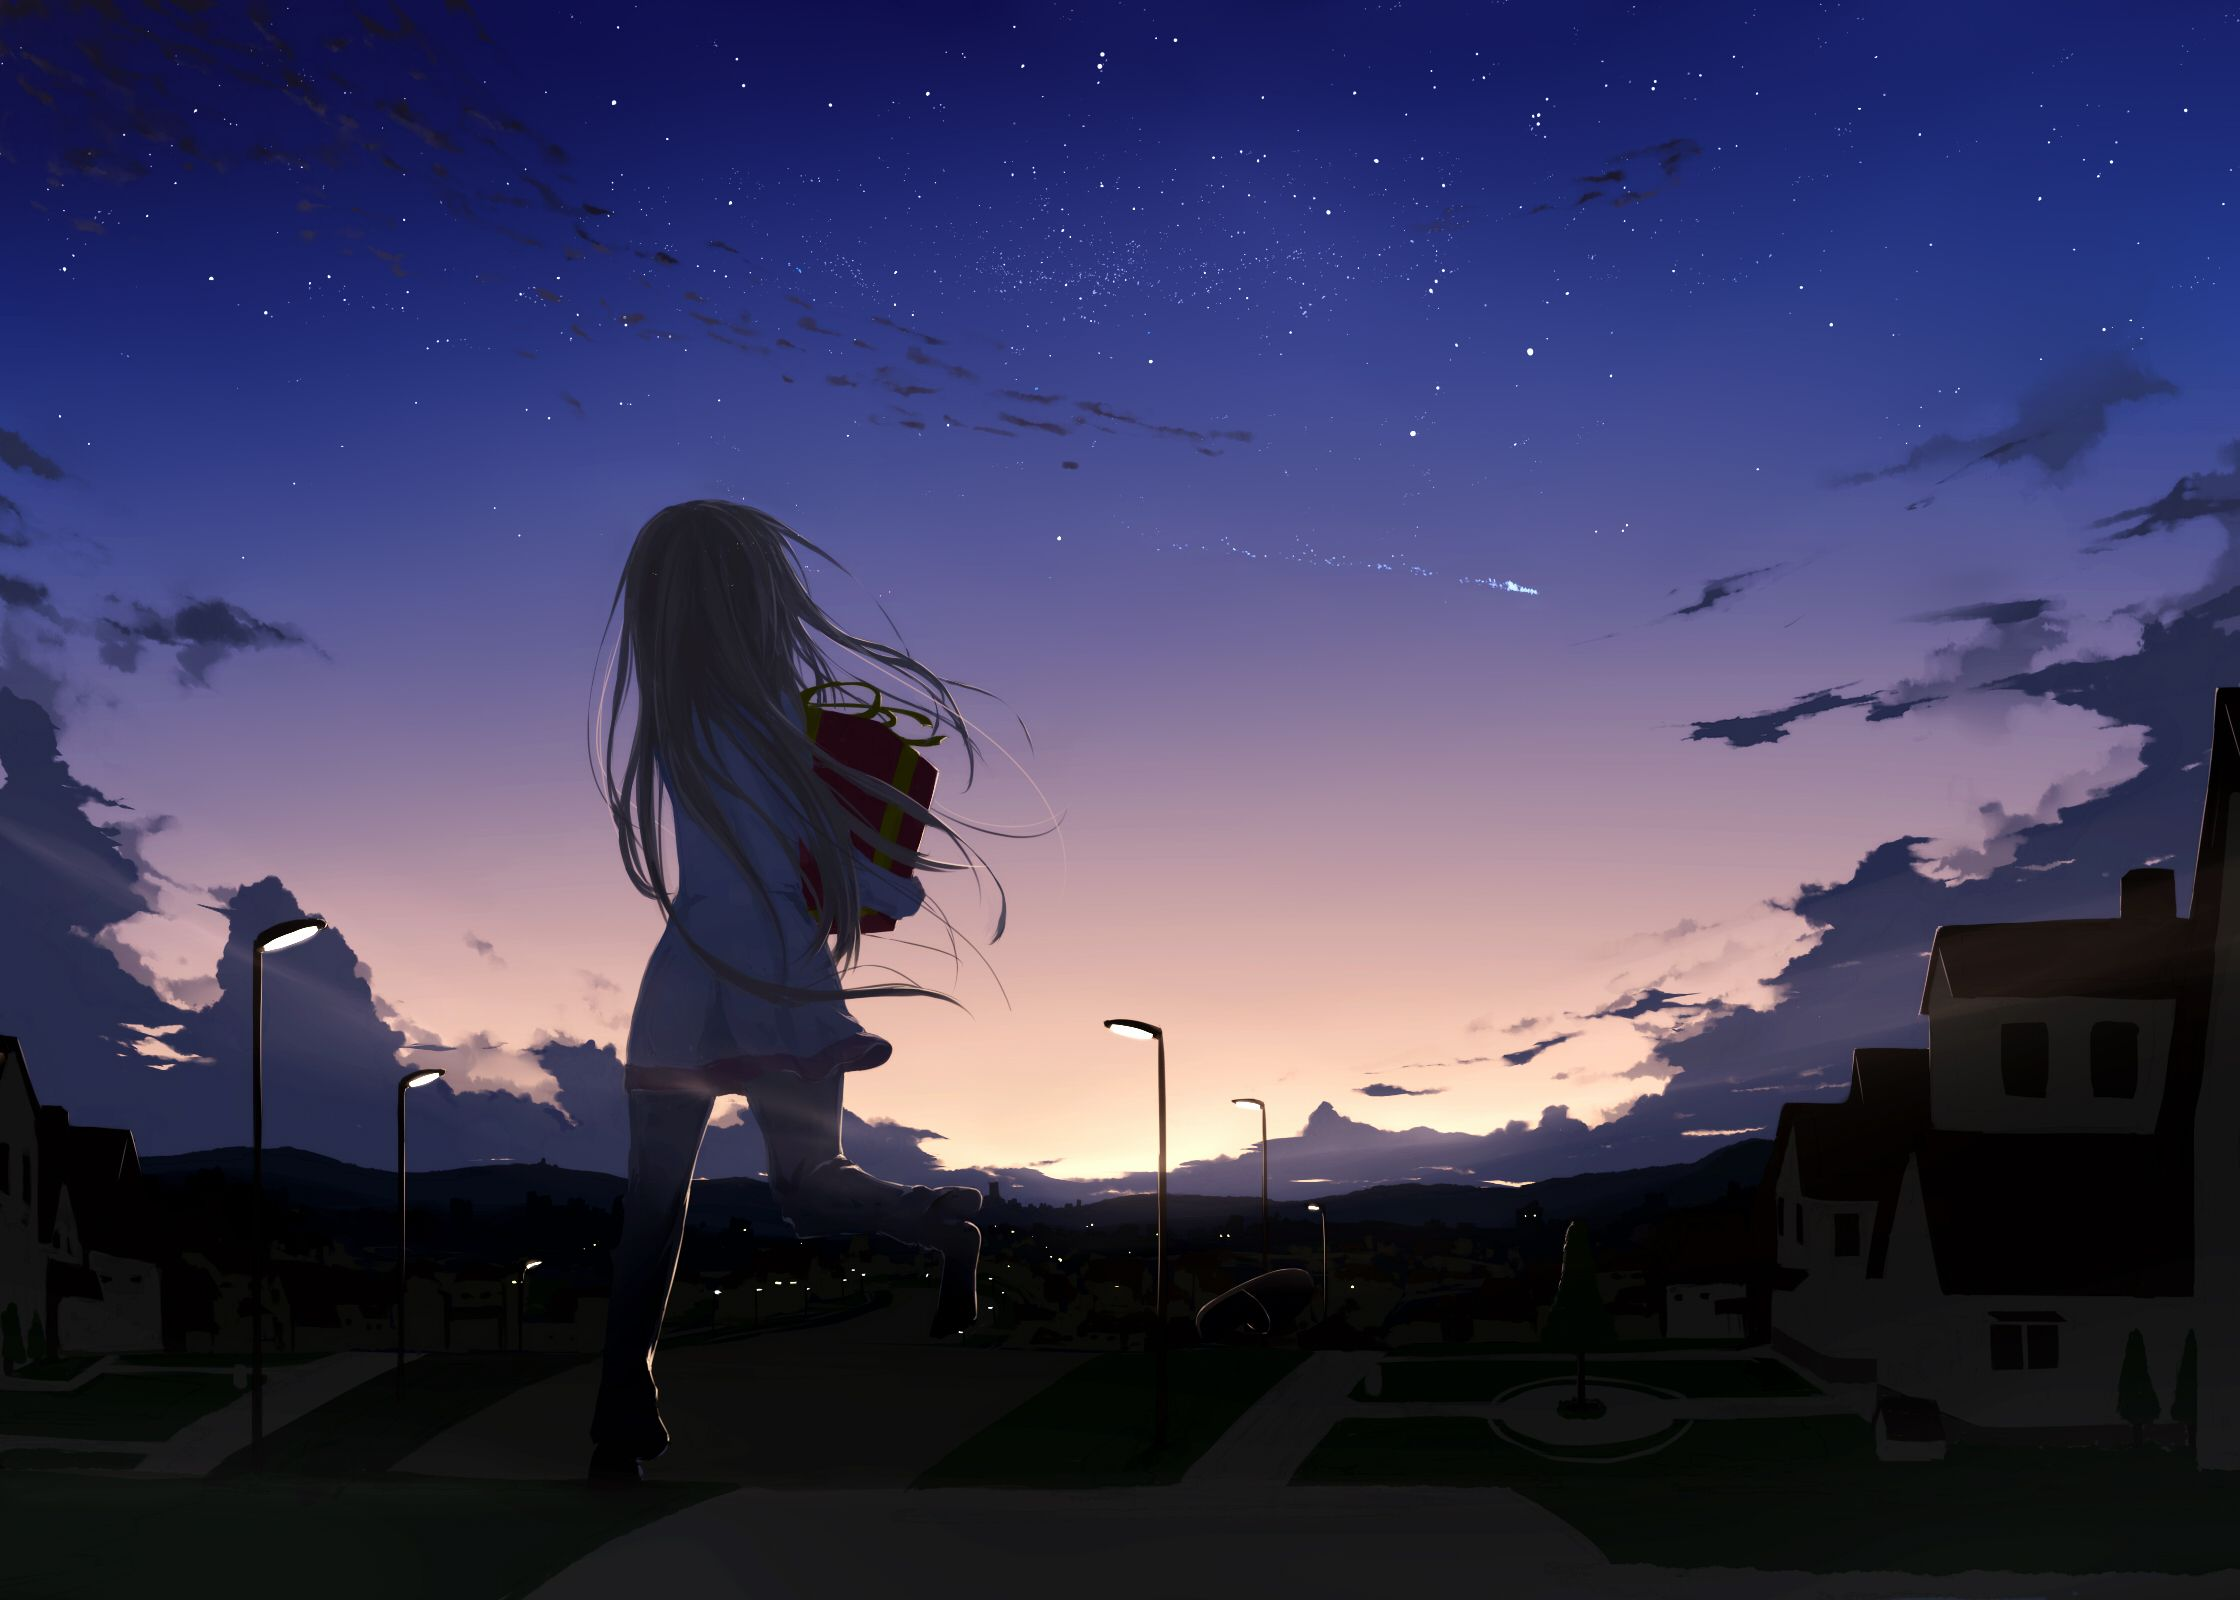 Anime Night Wallpapers Top Free Anime Night Backgrounds Wallpaperaccess